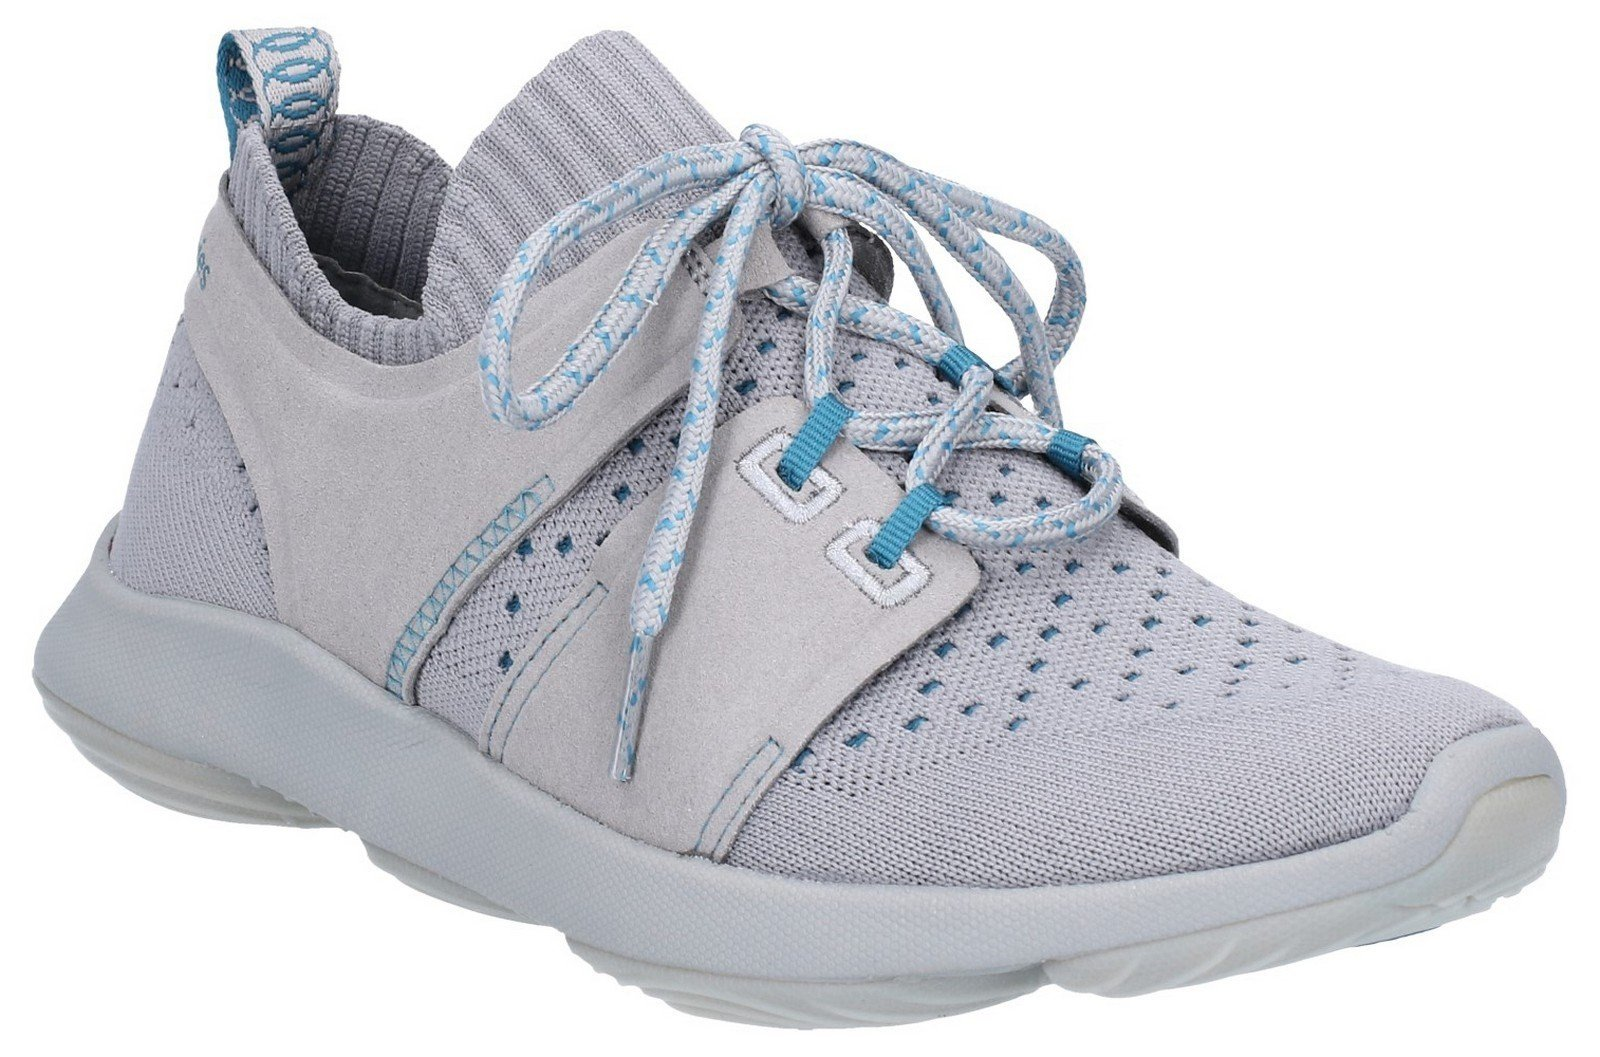 Hush Puppies Women's World BounceMax Lace Up Trainer Grey 30004 - Frost Grey Knit 3